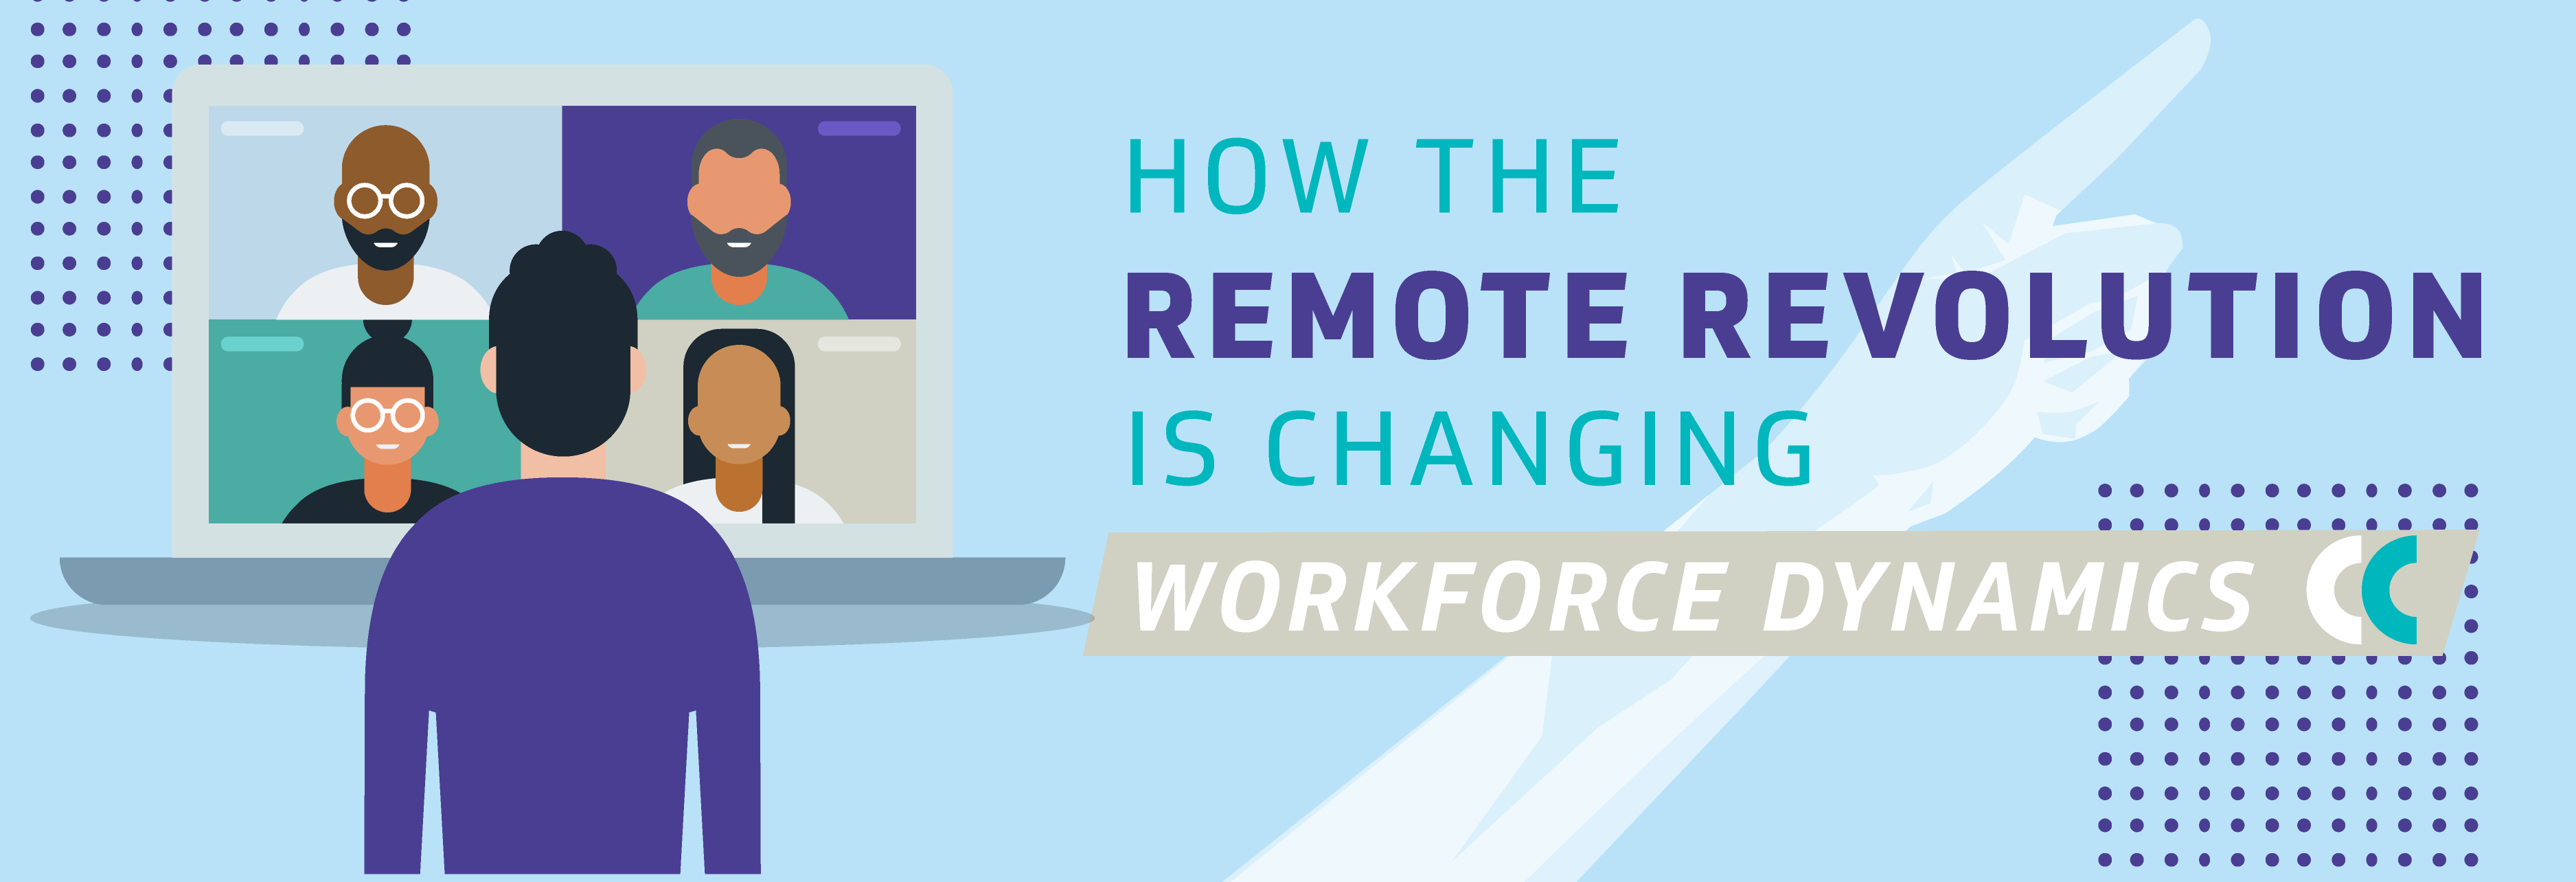 How the Remote Revolution is Changing Workforce Dynamics